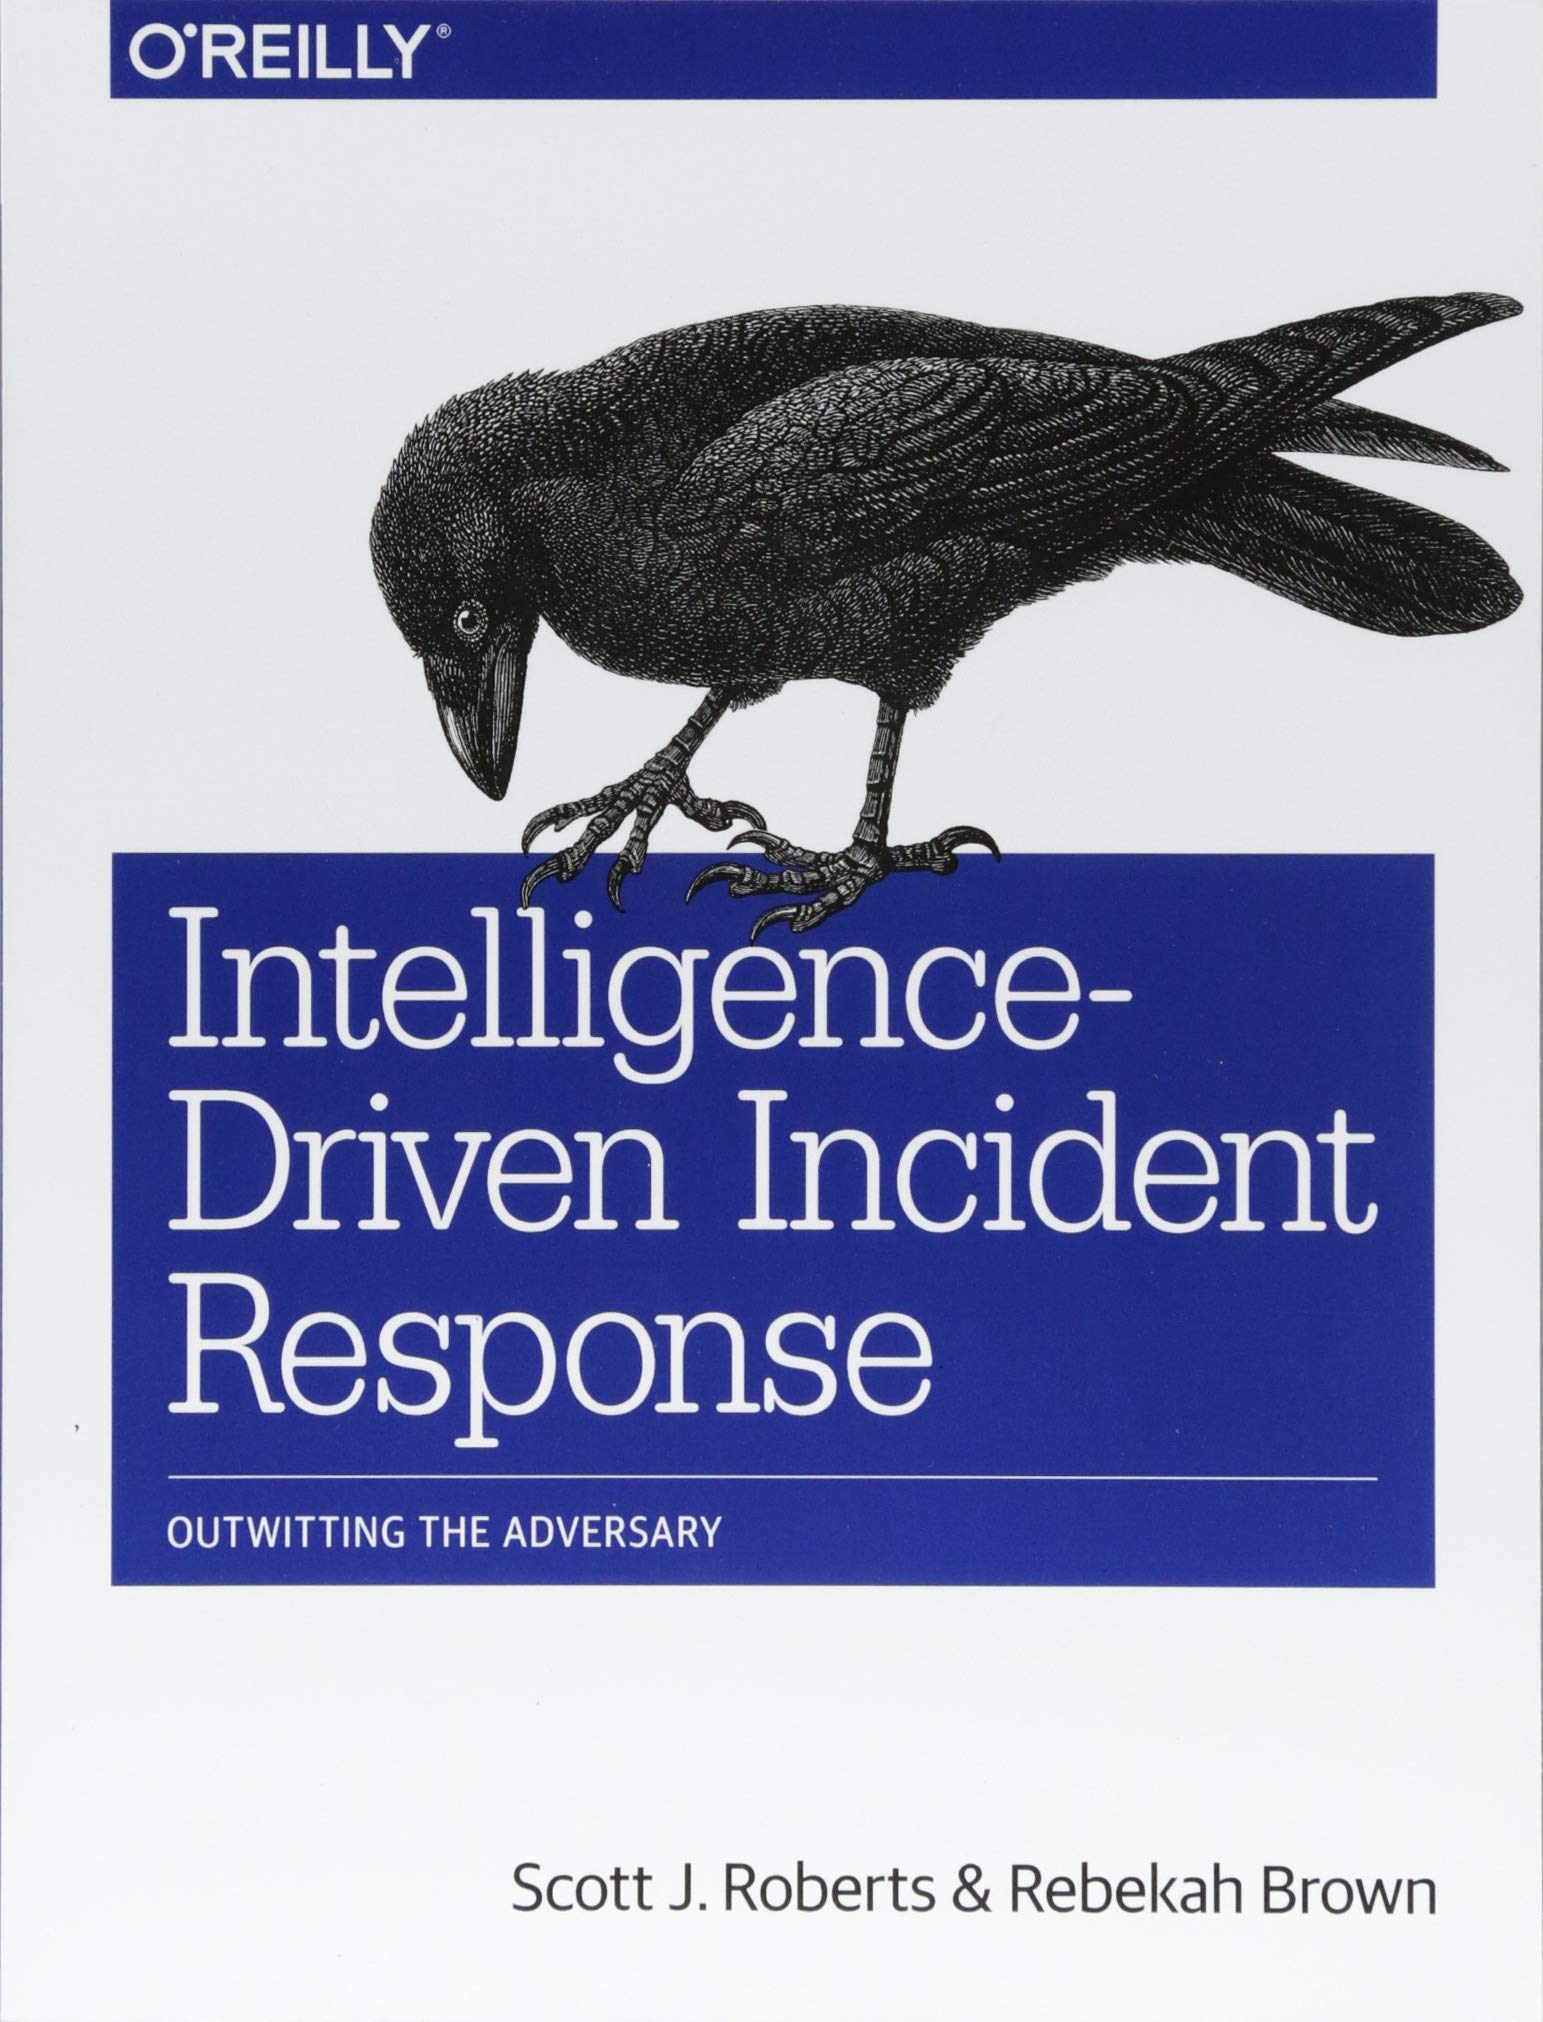 Intelligence-Driven Incident Response: Outwitting the Adversary by O'Reilly Media